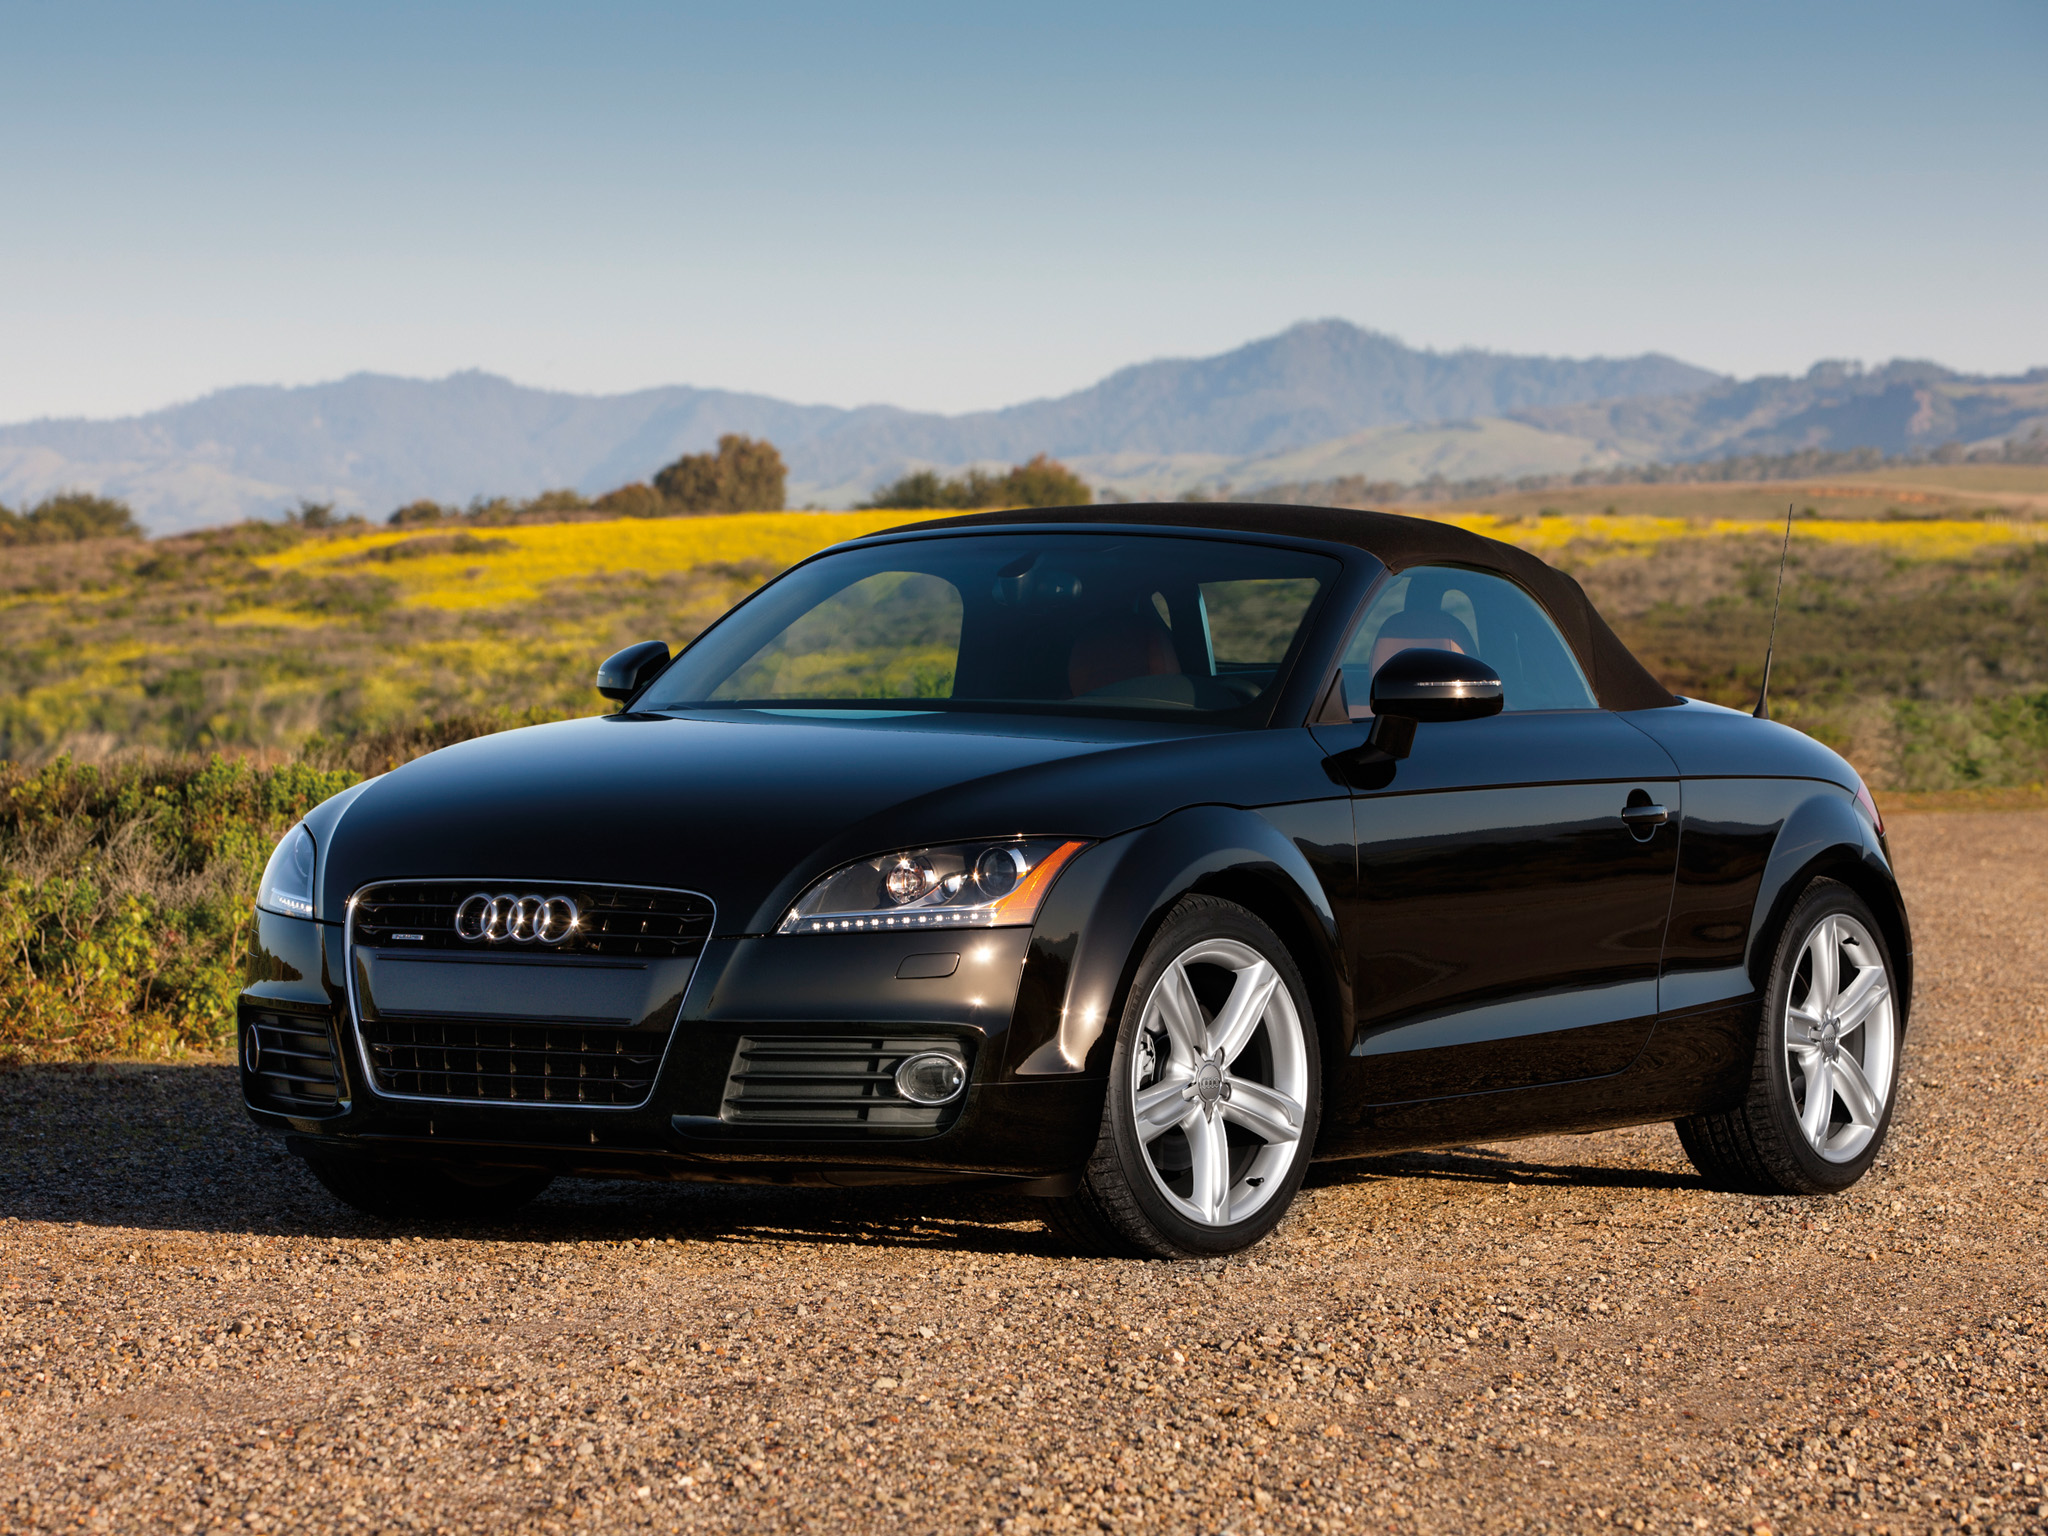 audi tt 2 0 tfsi quattro details of cars on. Black Bedroom Furniture Sets. Home Design Ideas